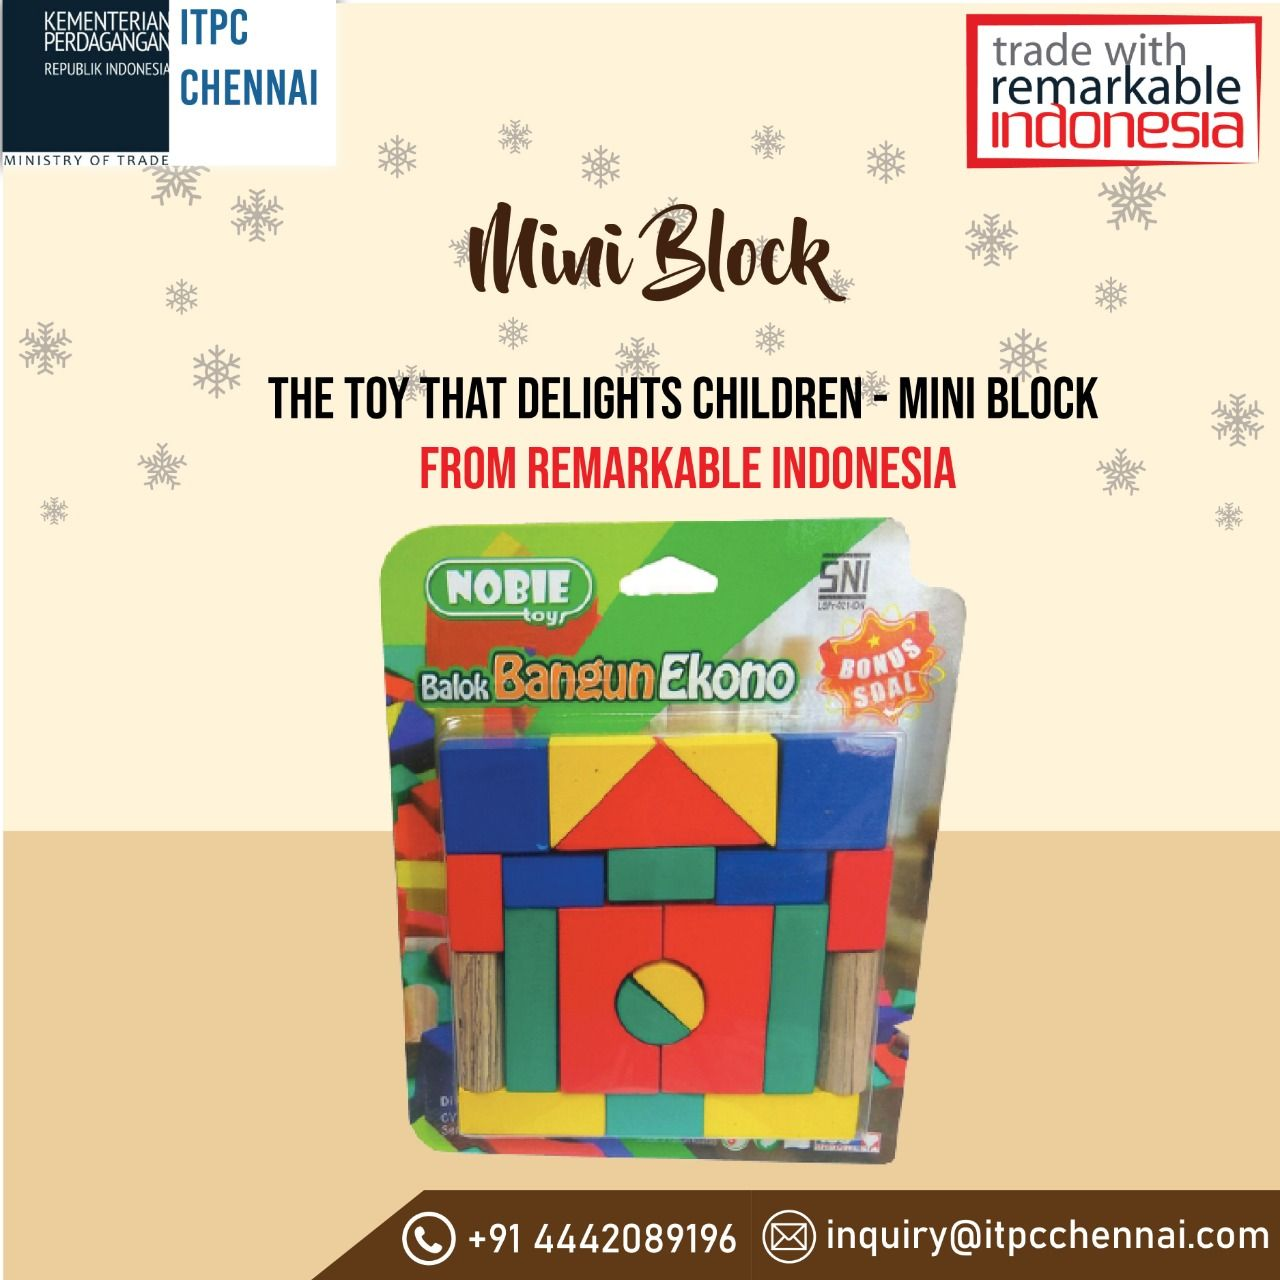 The mini block plaything from radinka craft toys is made